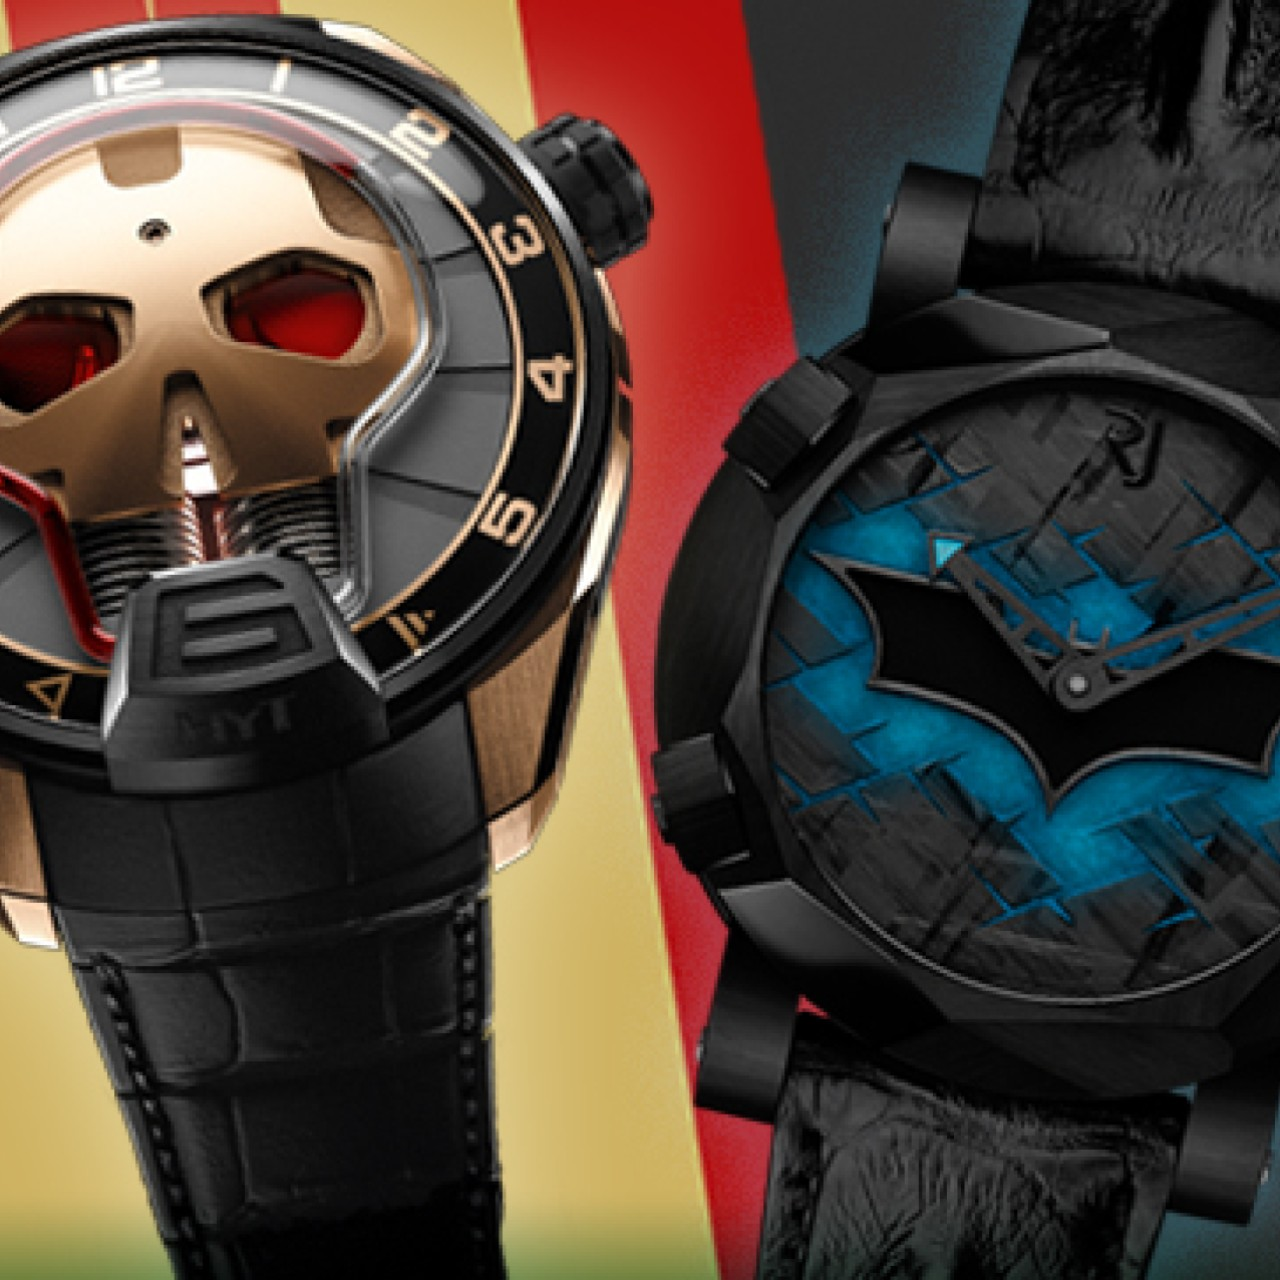 5 powerful watches perfect for superheroes   South China Morning Post